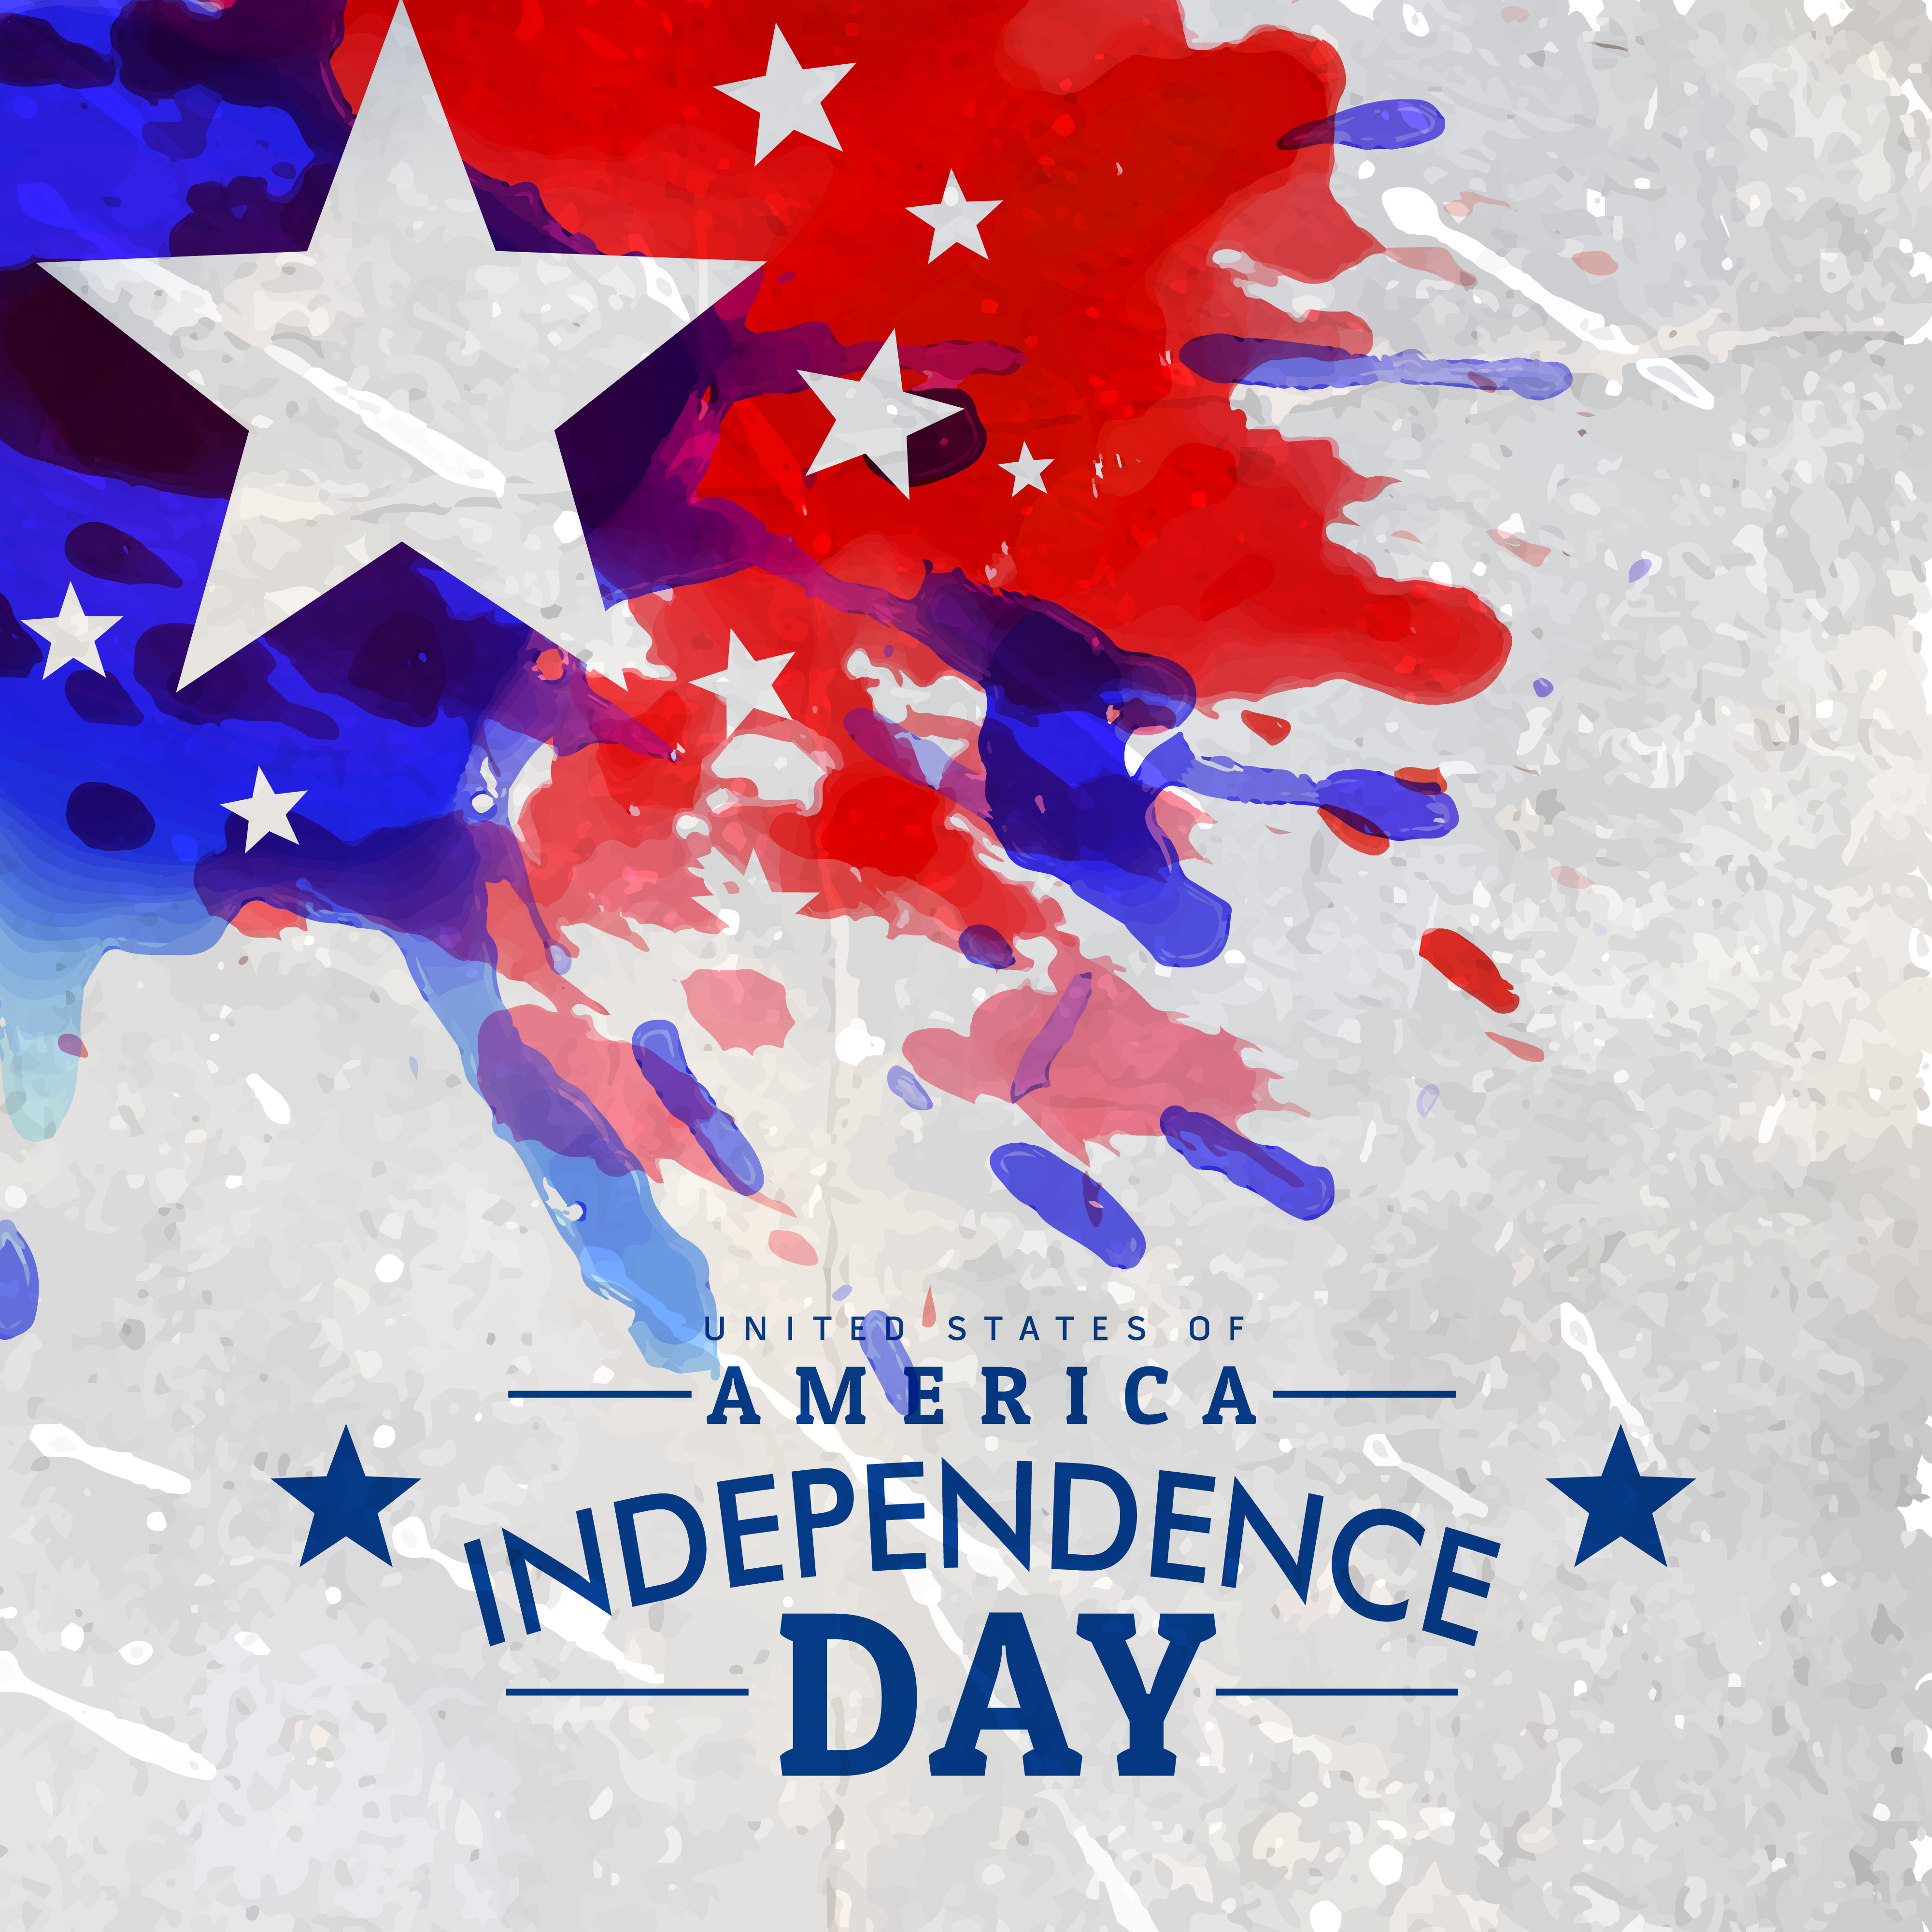 Independence Day: Grunge Style American Independence Day Background